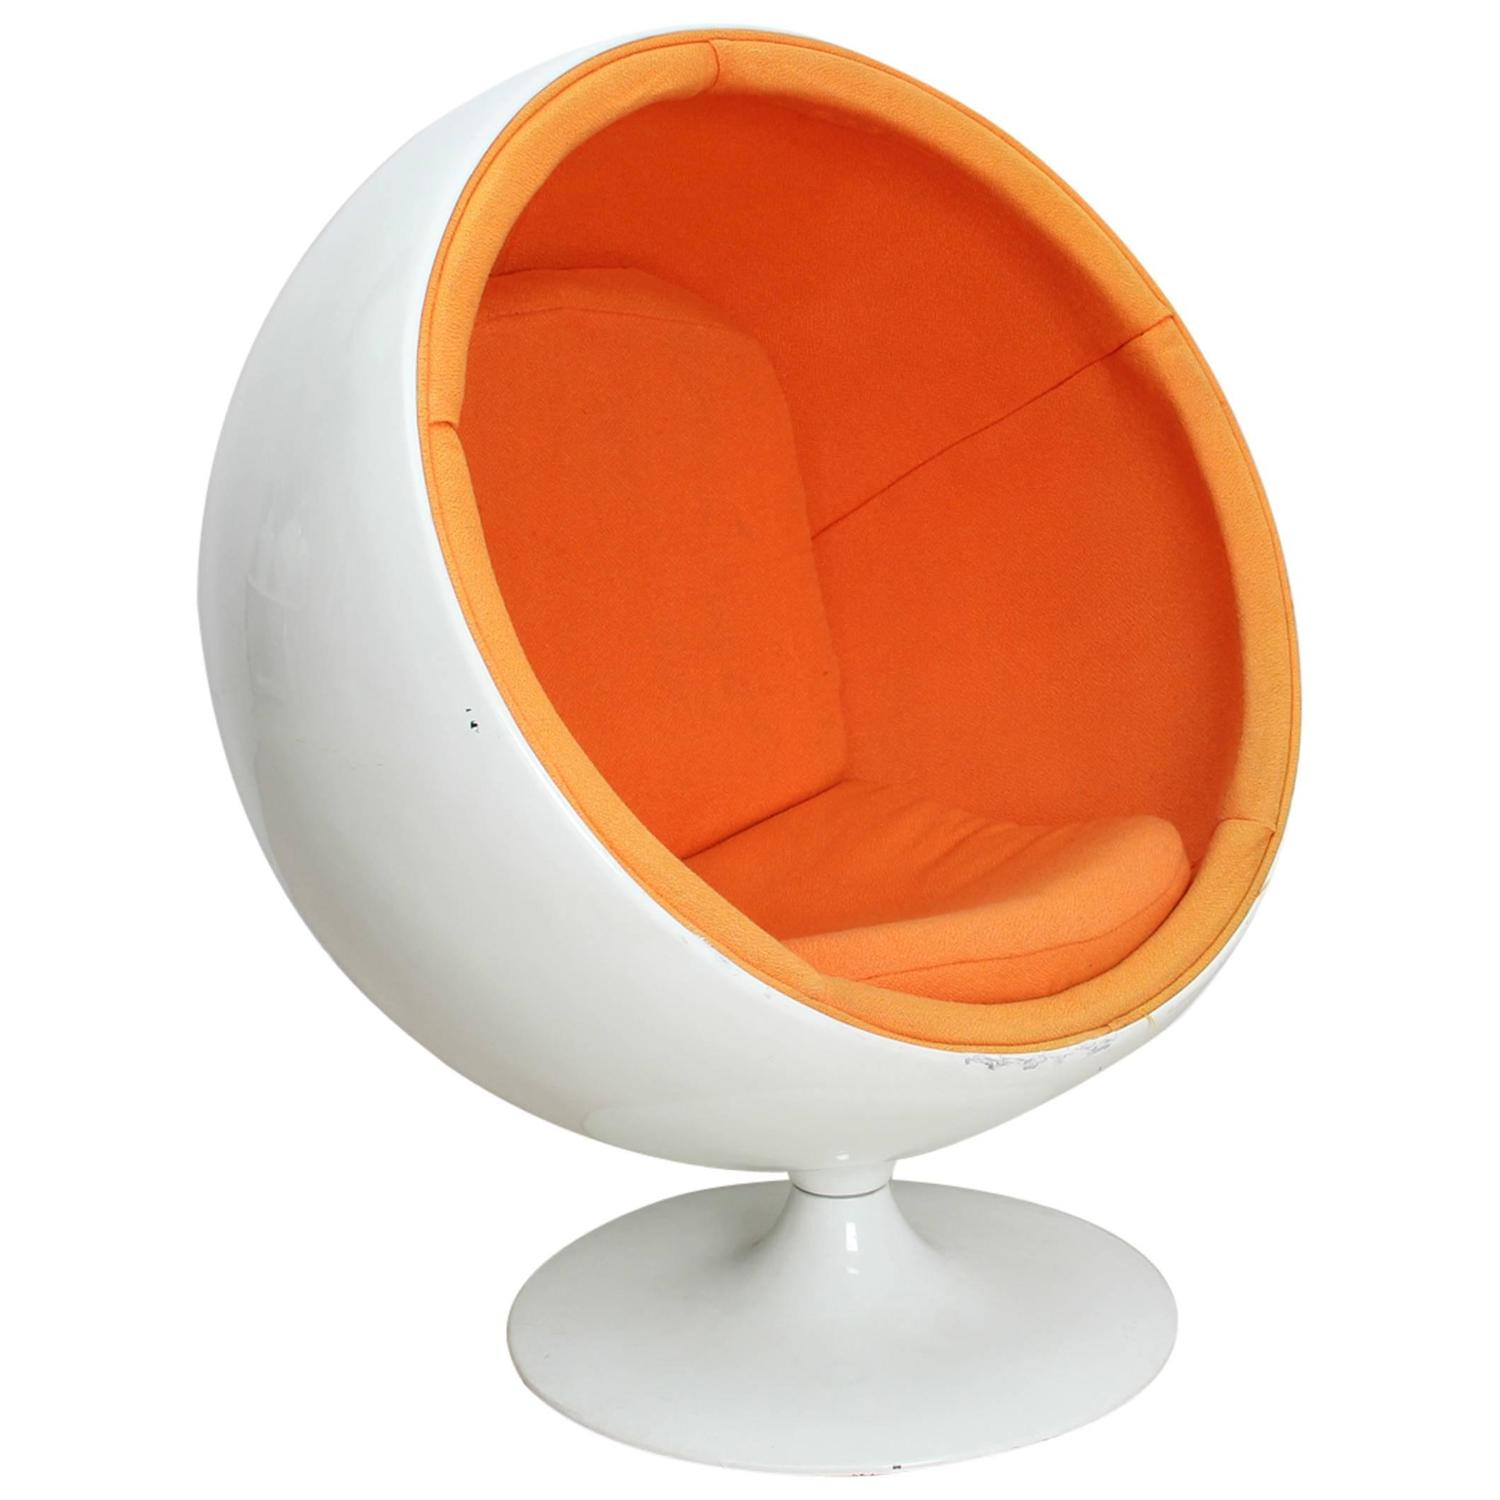 Ball Chair For Kids By Eero Aarnio Ed. Adelta, 1963 For Sale At 1stdibs